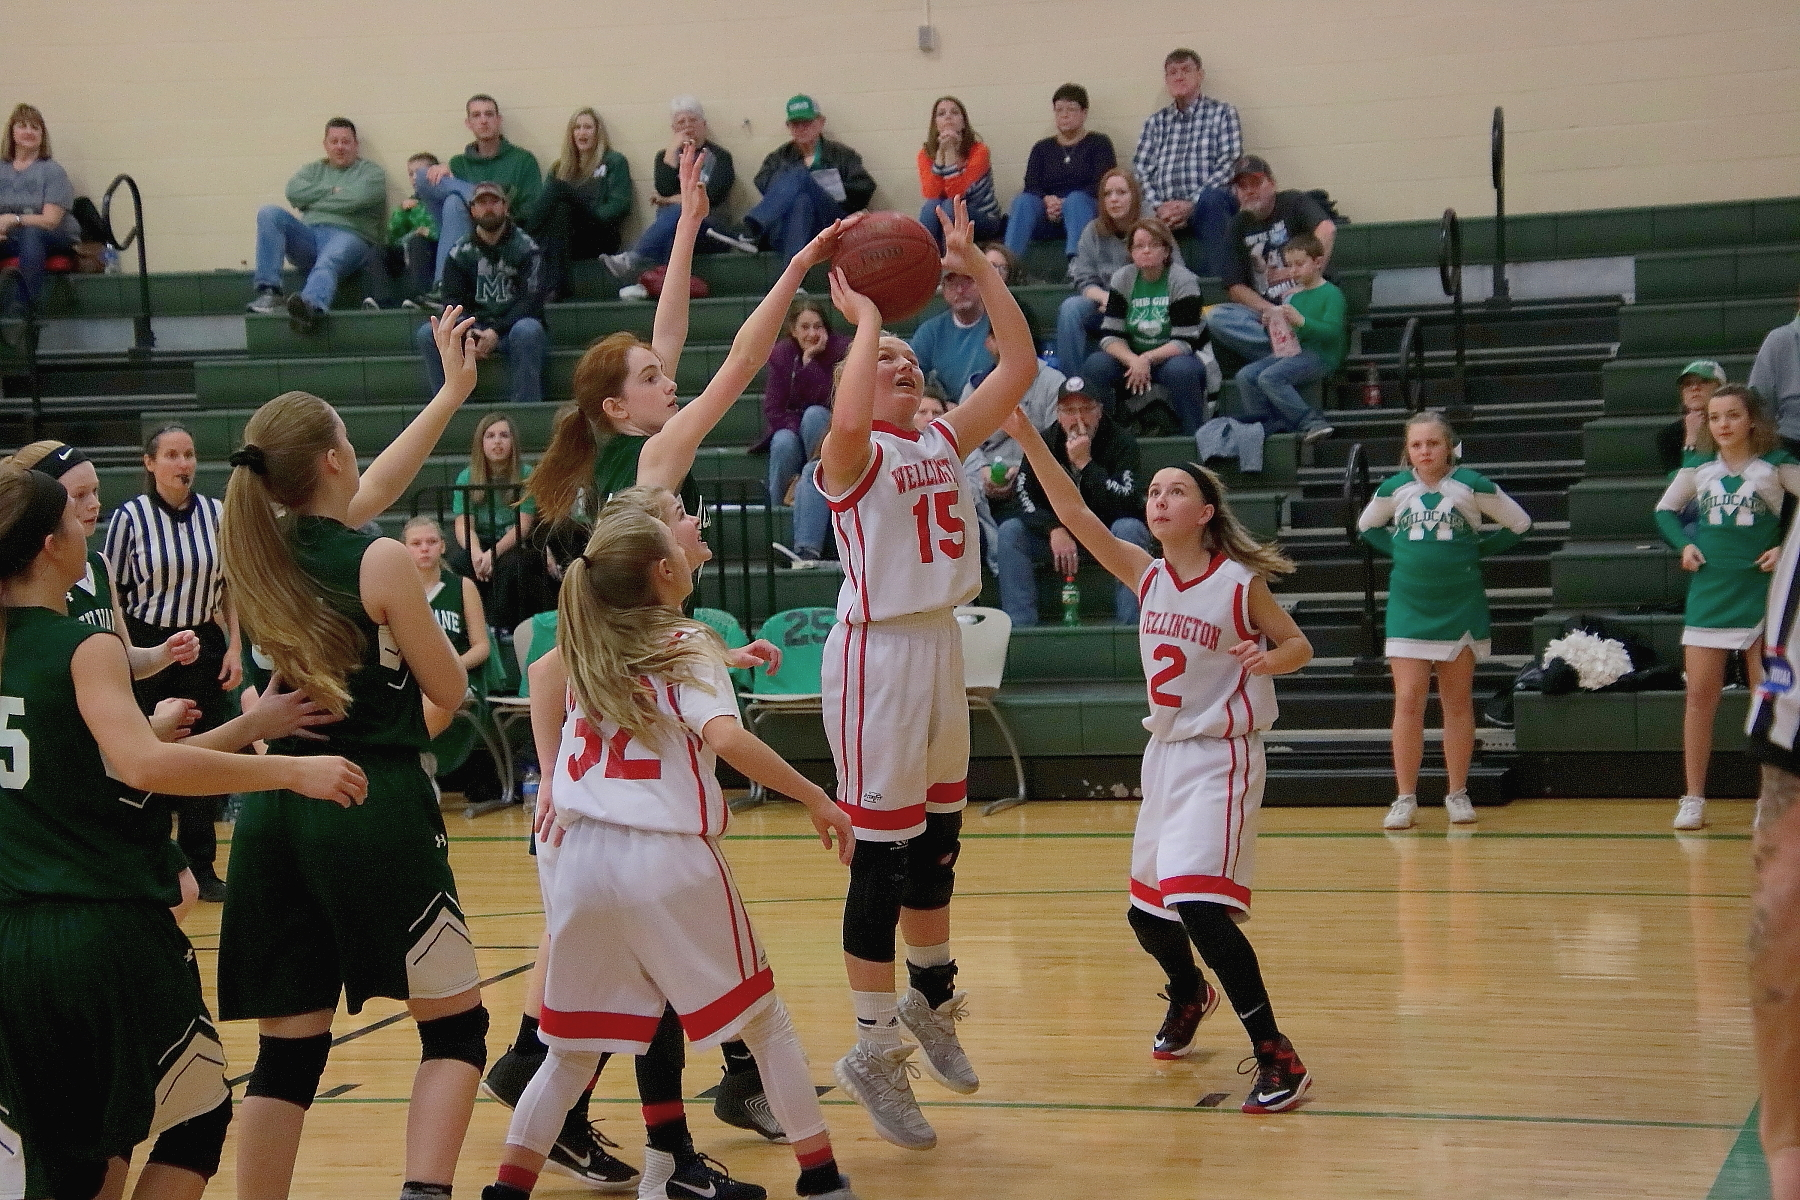 WMS 7th Grade Lady Knights